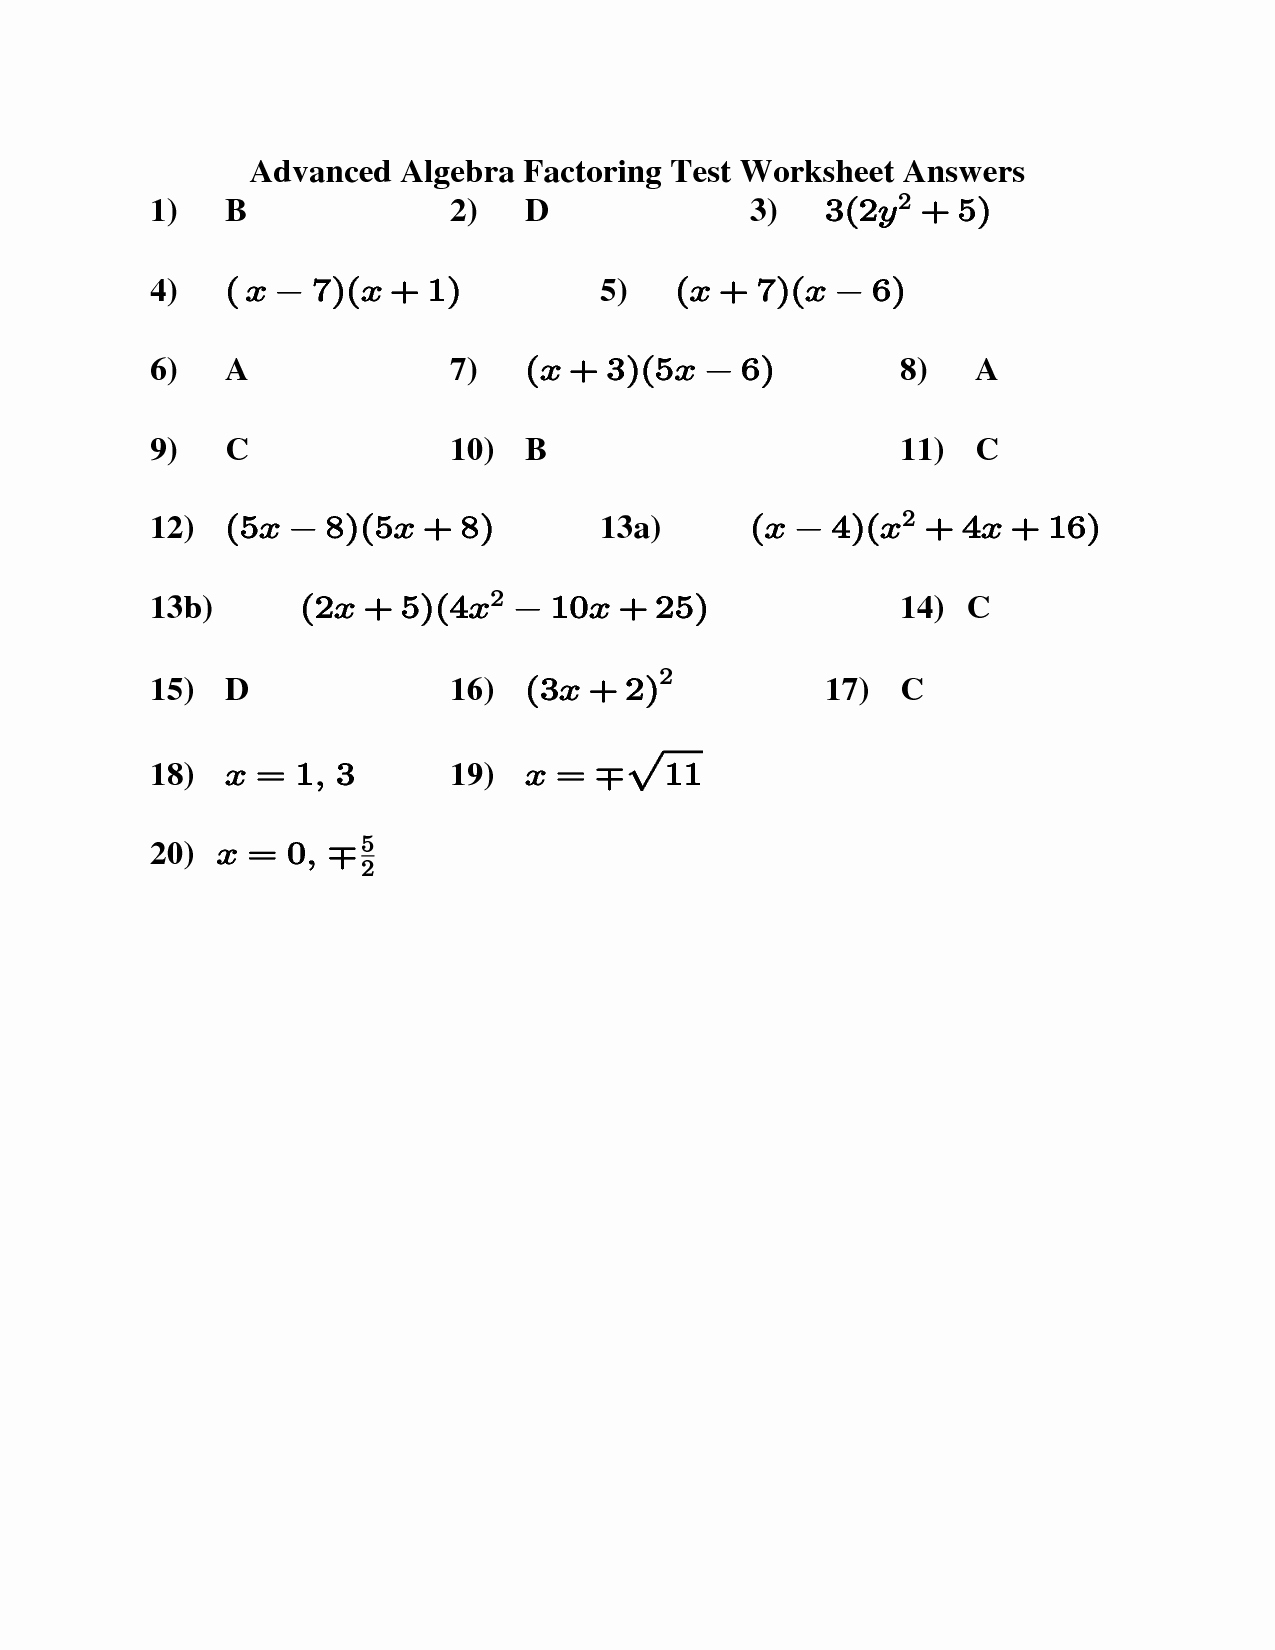 Factoring Worksheet Algebra 2 Fresh 11 Best Of Factoring Worksheets Algebra Ii